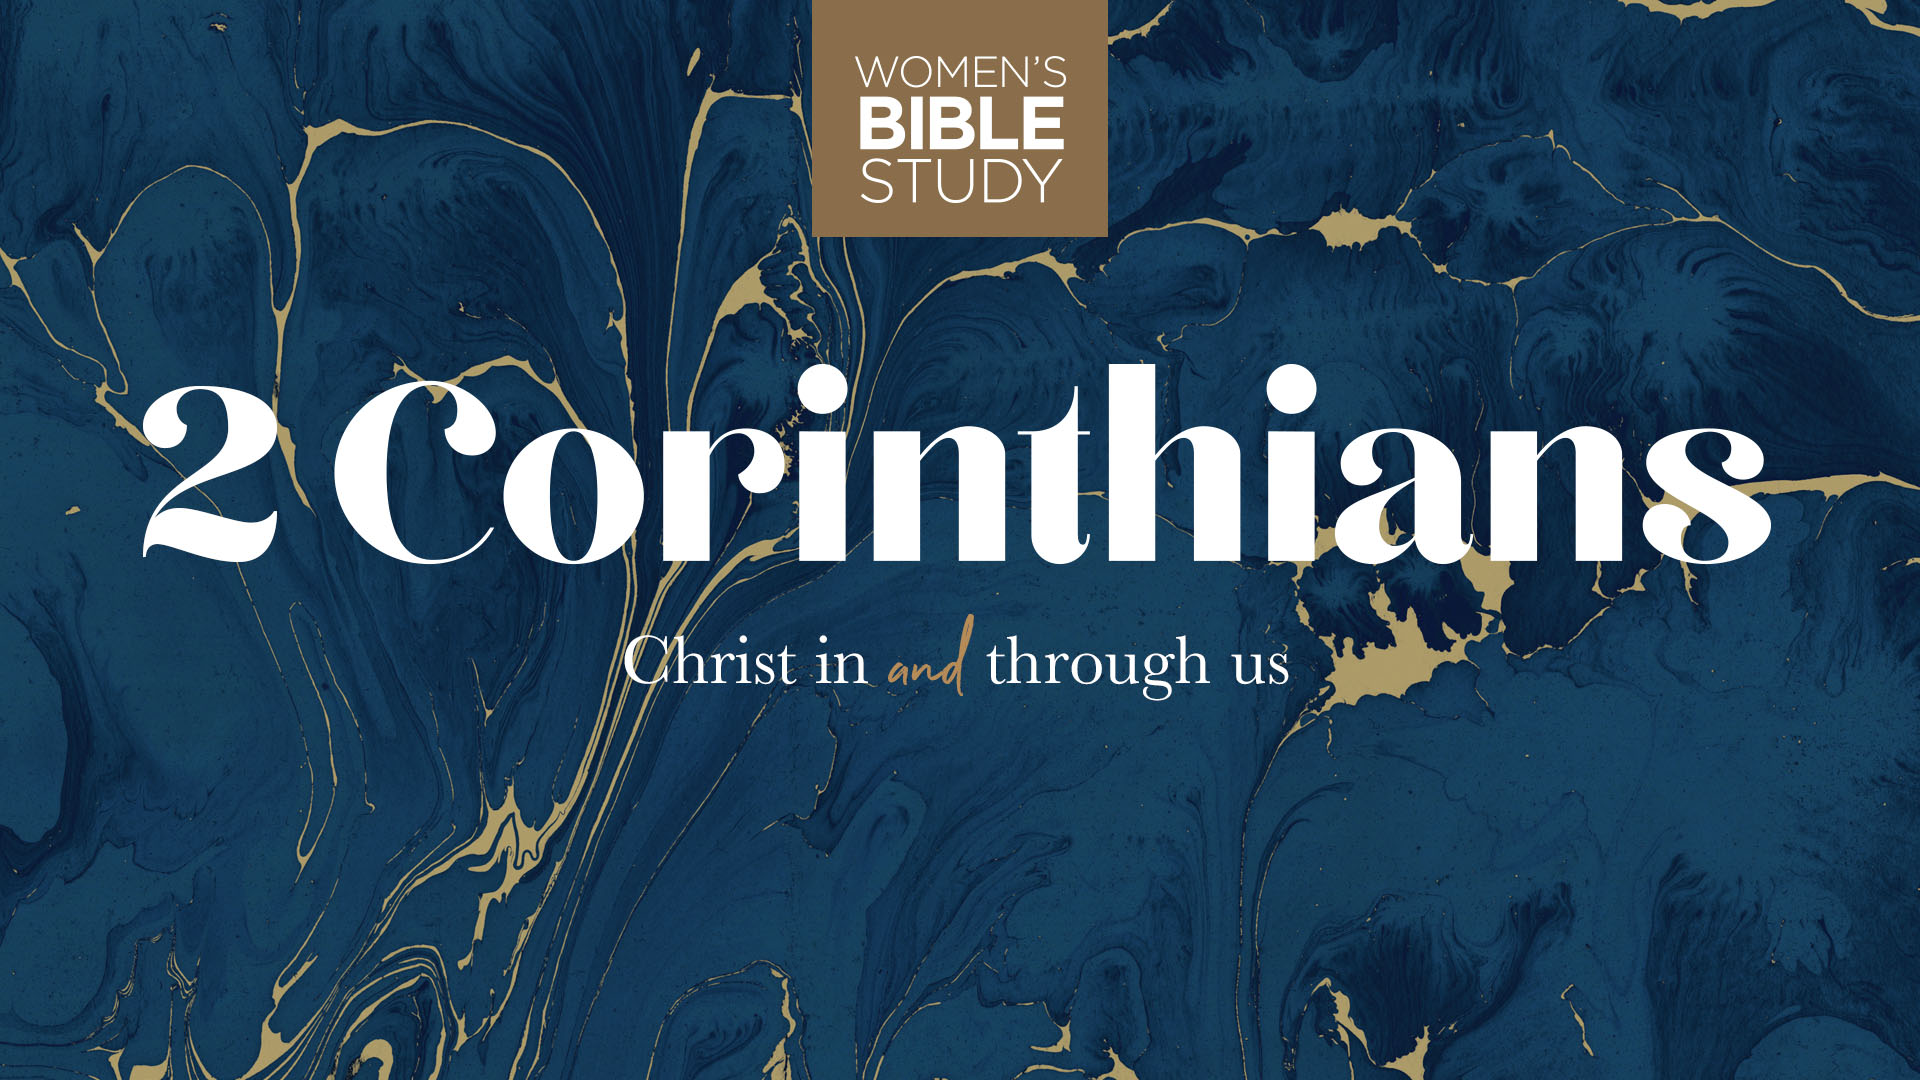 2 Corinthians 10 - God-Given Authority